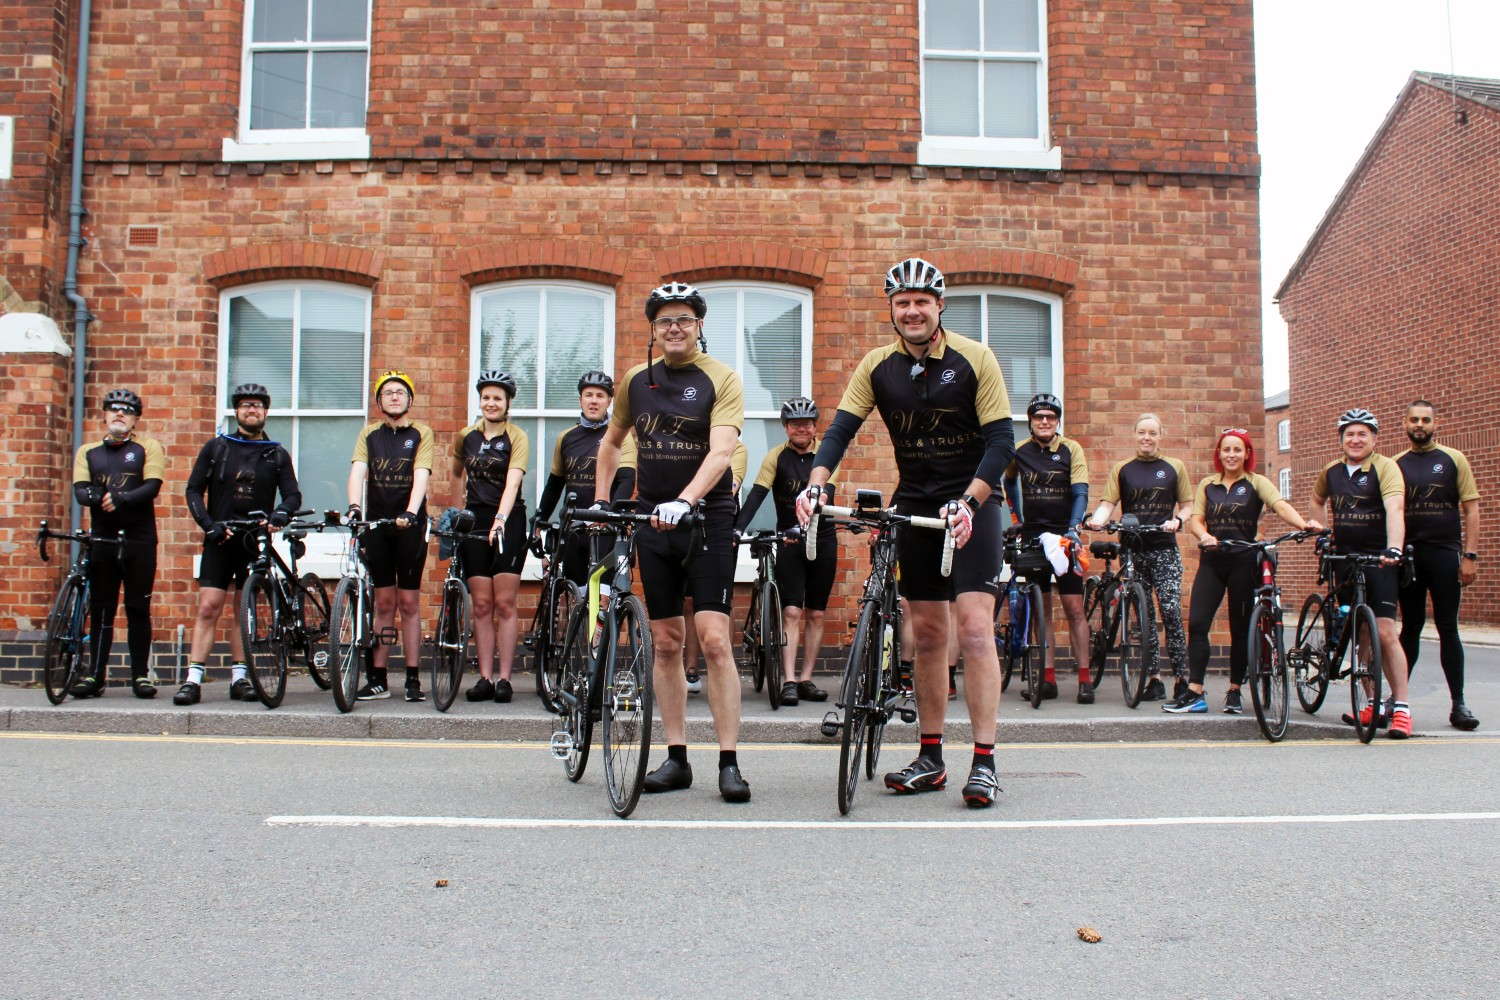 Fundraisers hit the road for 210-mile cycle ride to support St Giles Hospice